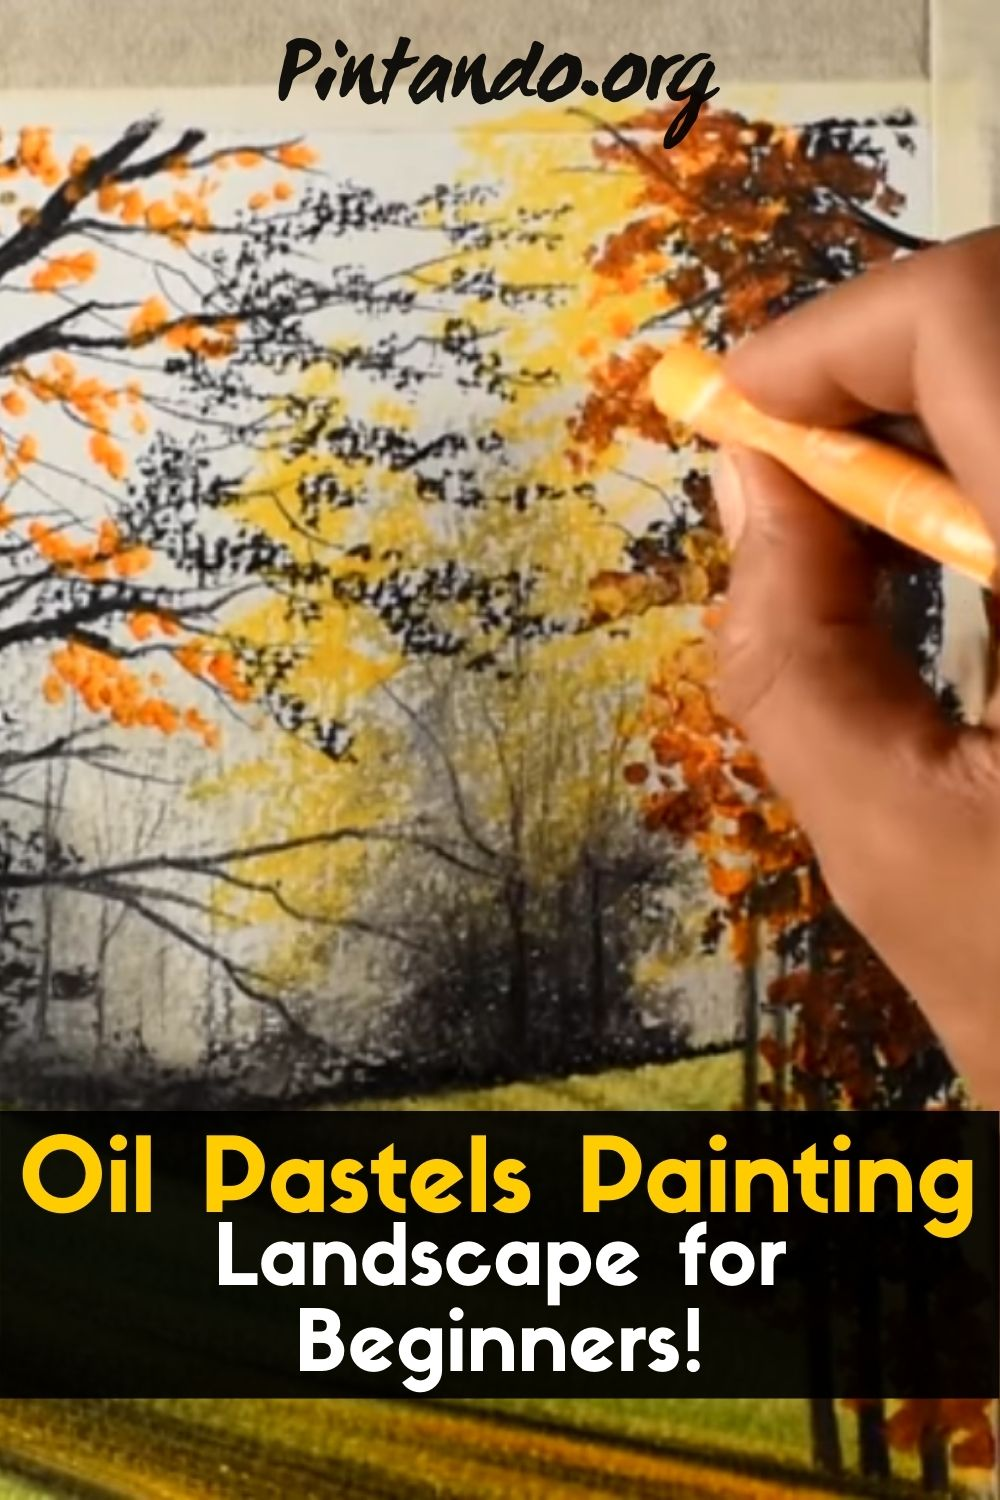 Oil Pastels Painting Landscape for Beginners! (1)